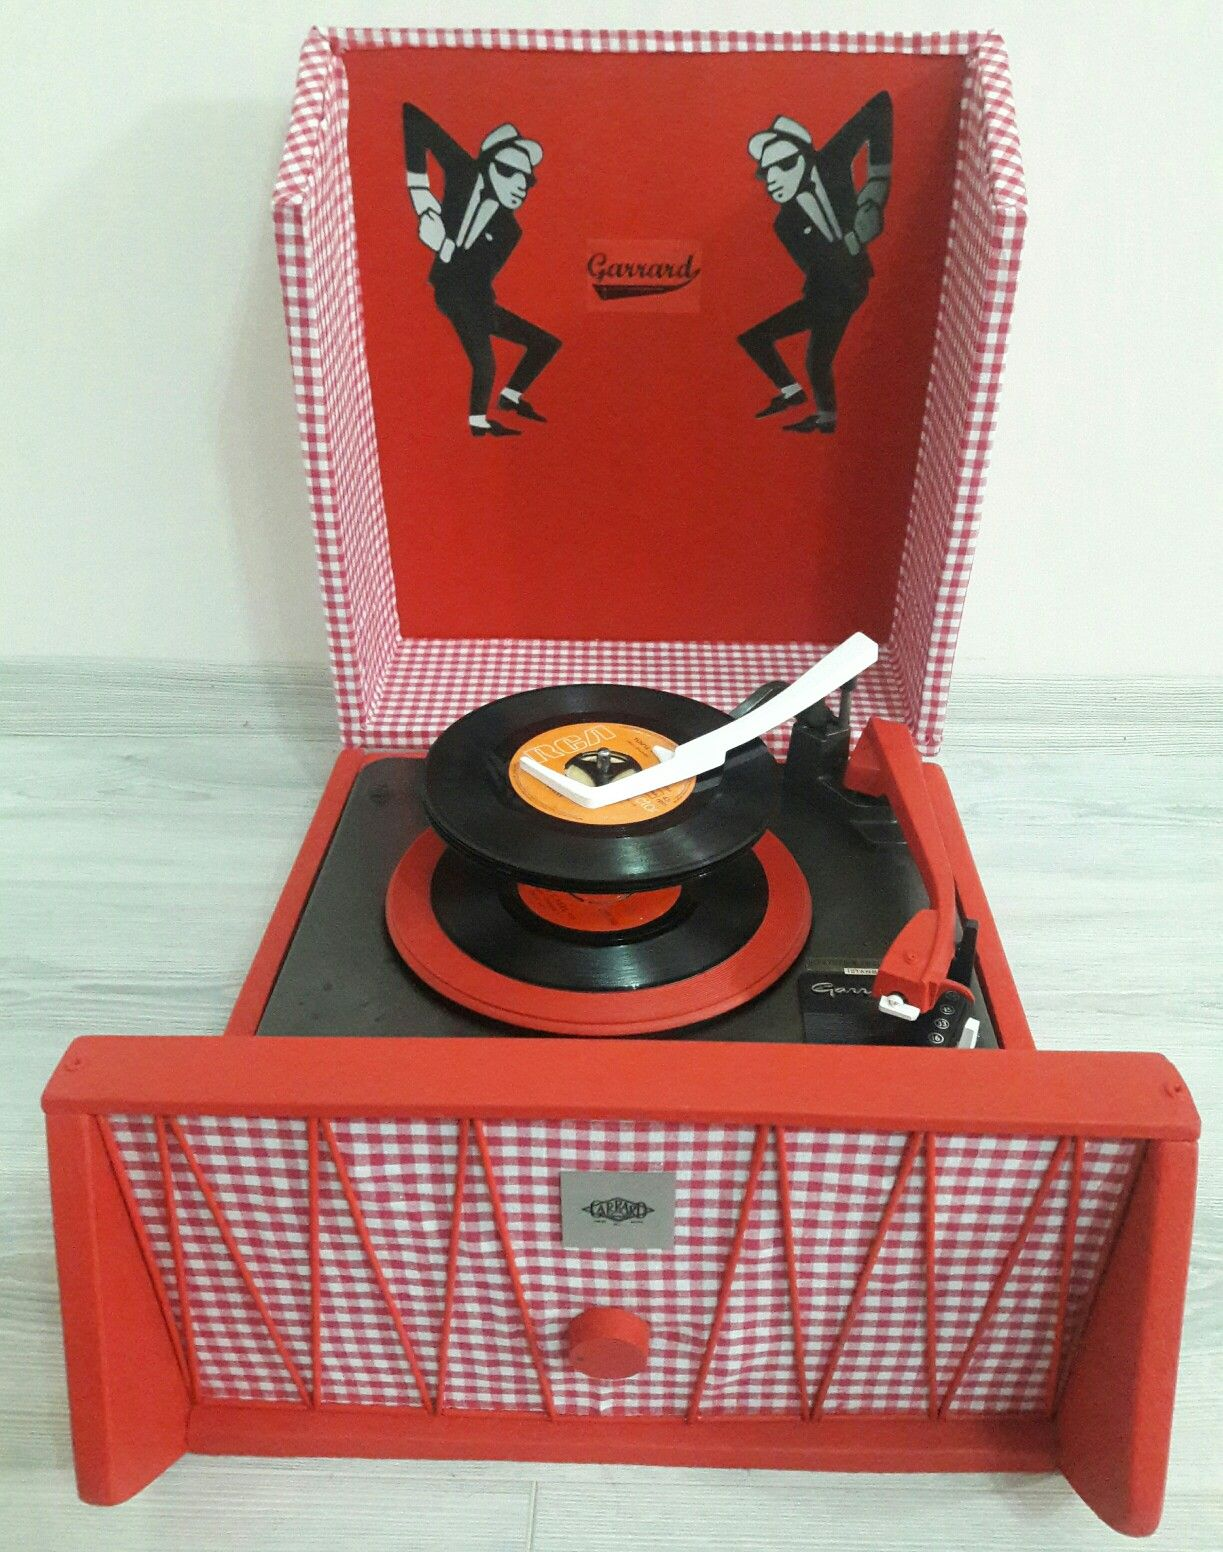 Garrard Record Player...1960\'s...Made in UK. By Space Age Antique ...